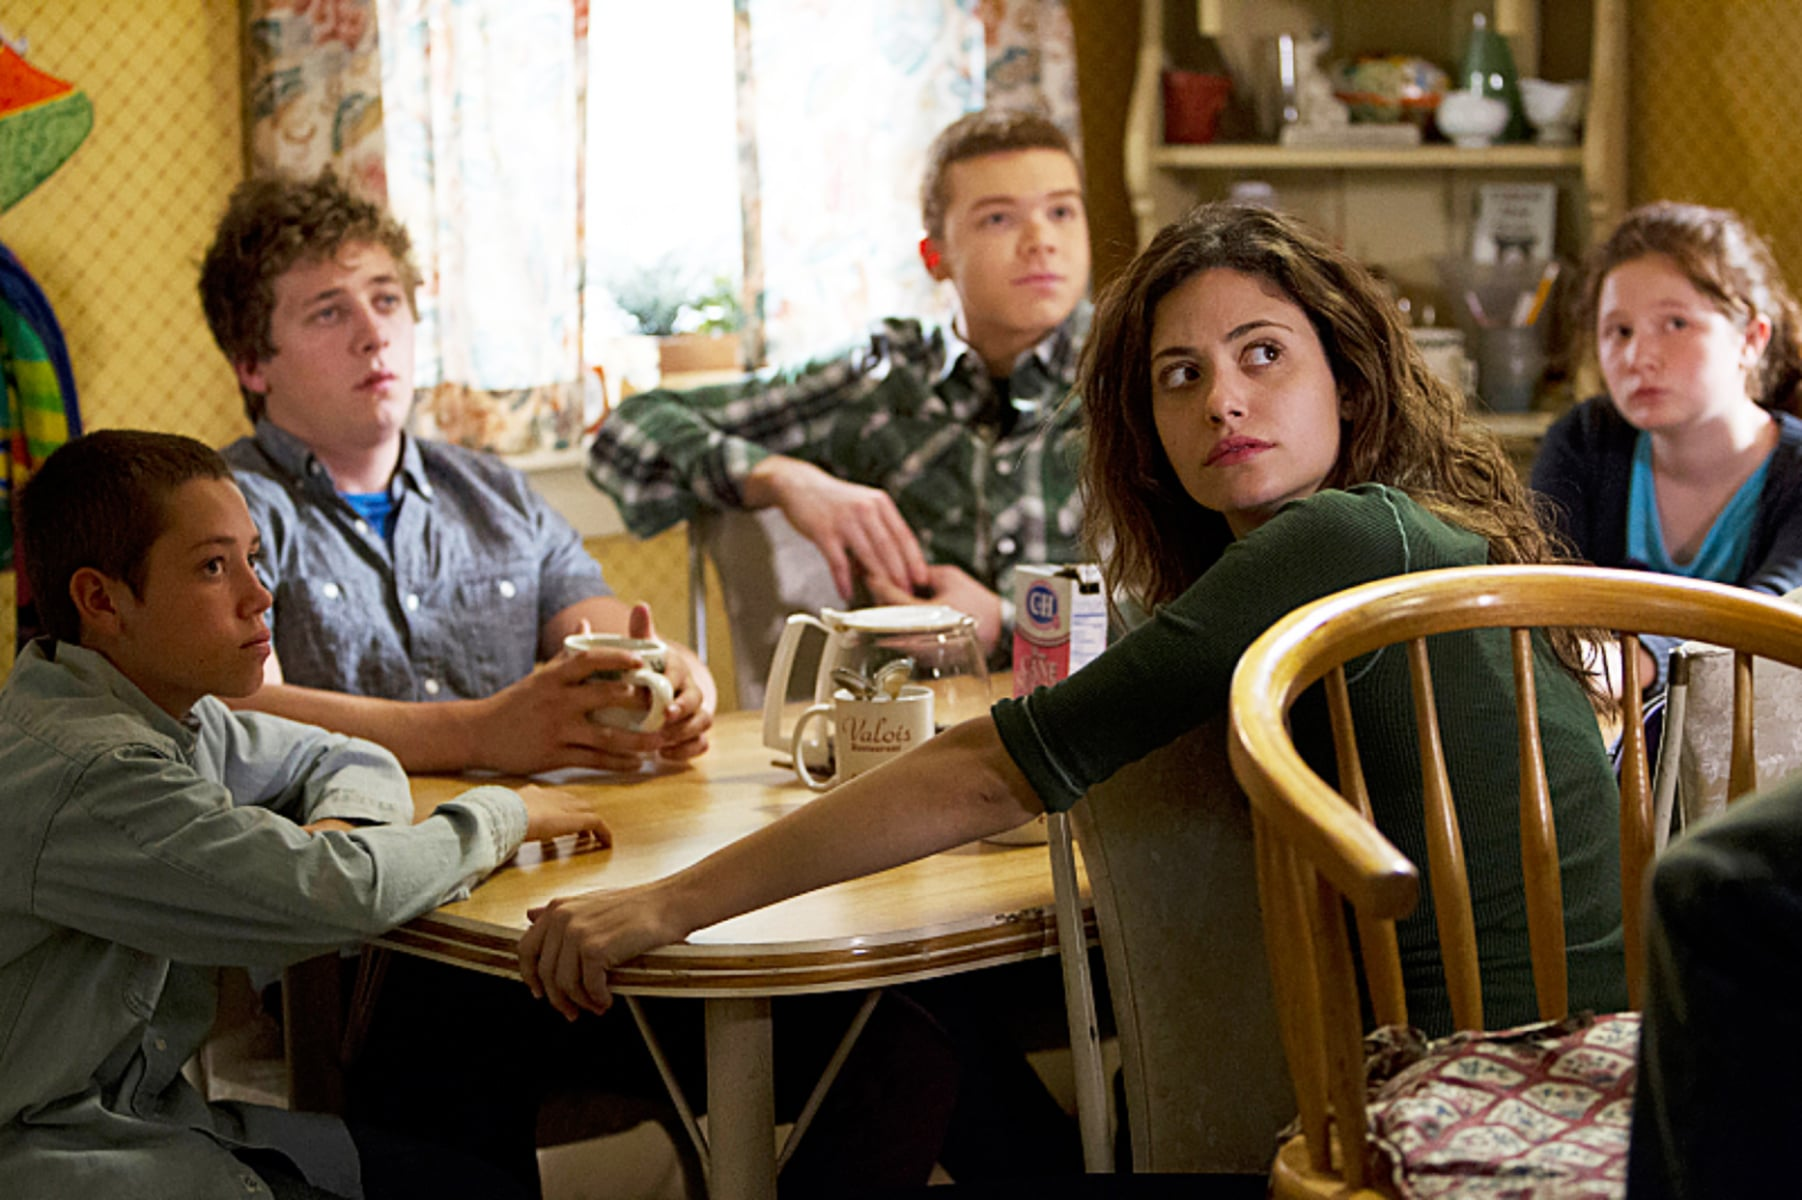 SHAMELESS, l-r: Ethan Cutkosky, Jeremy Allen White, Cameron Monaghan, Emmy Rossum, Emma Kenney in 'Where There's A Will' (Season 3, Episode 8, aired March 10, 2013). ph: Cliff Lipson/Showtime/courtesy Everett Collection